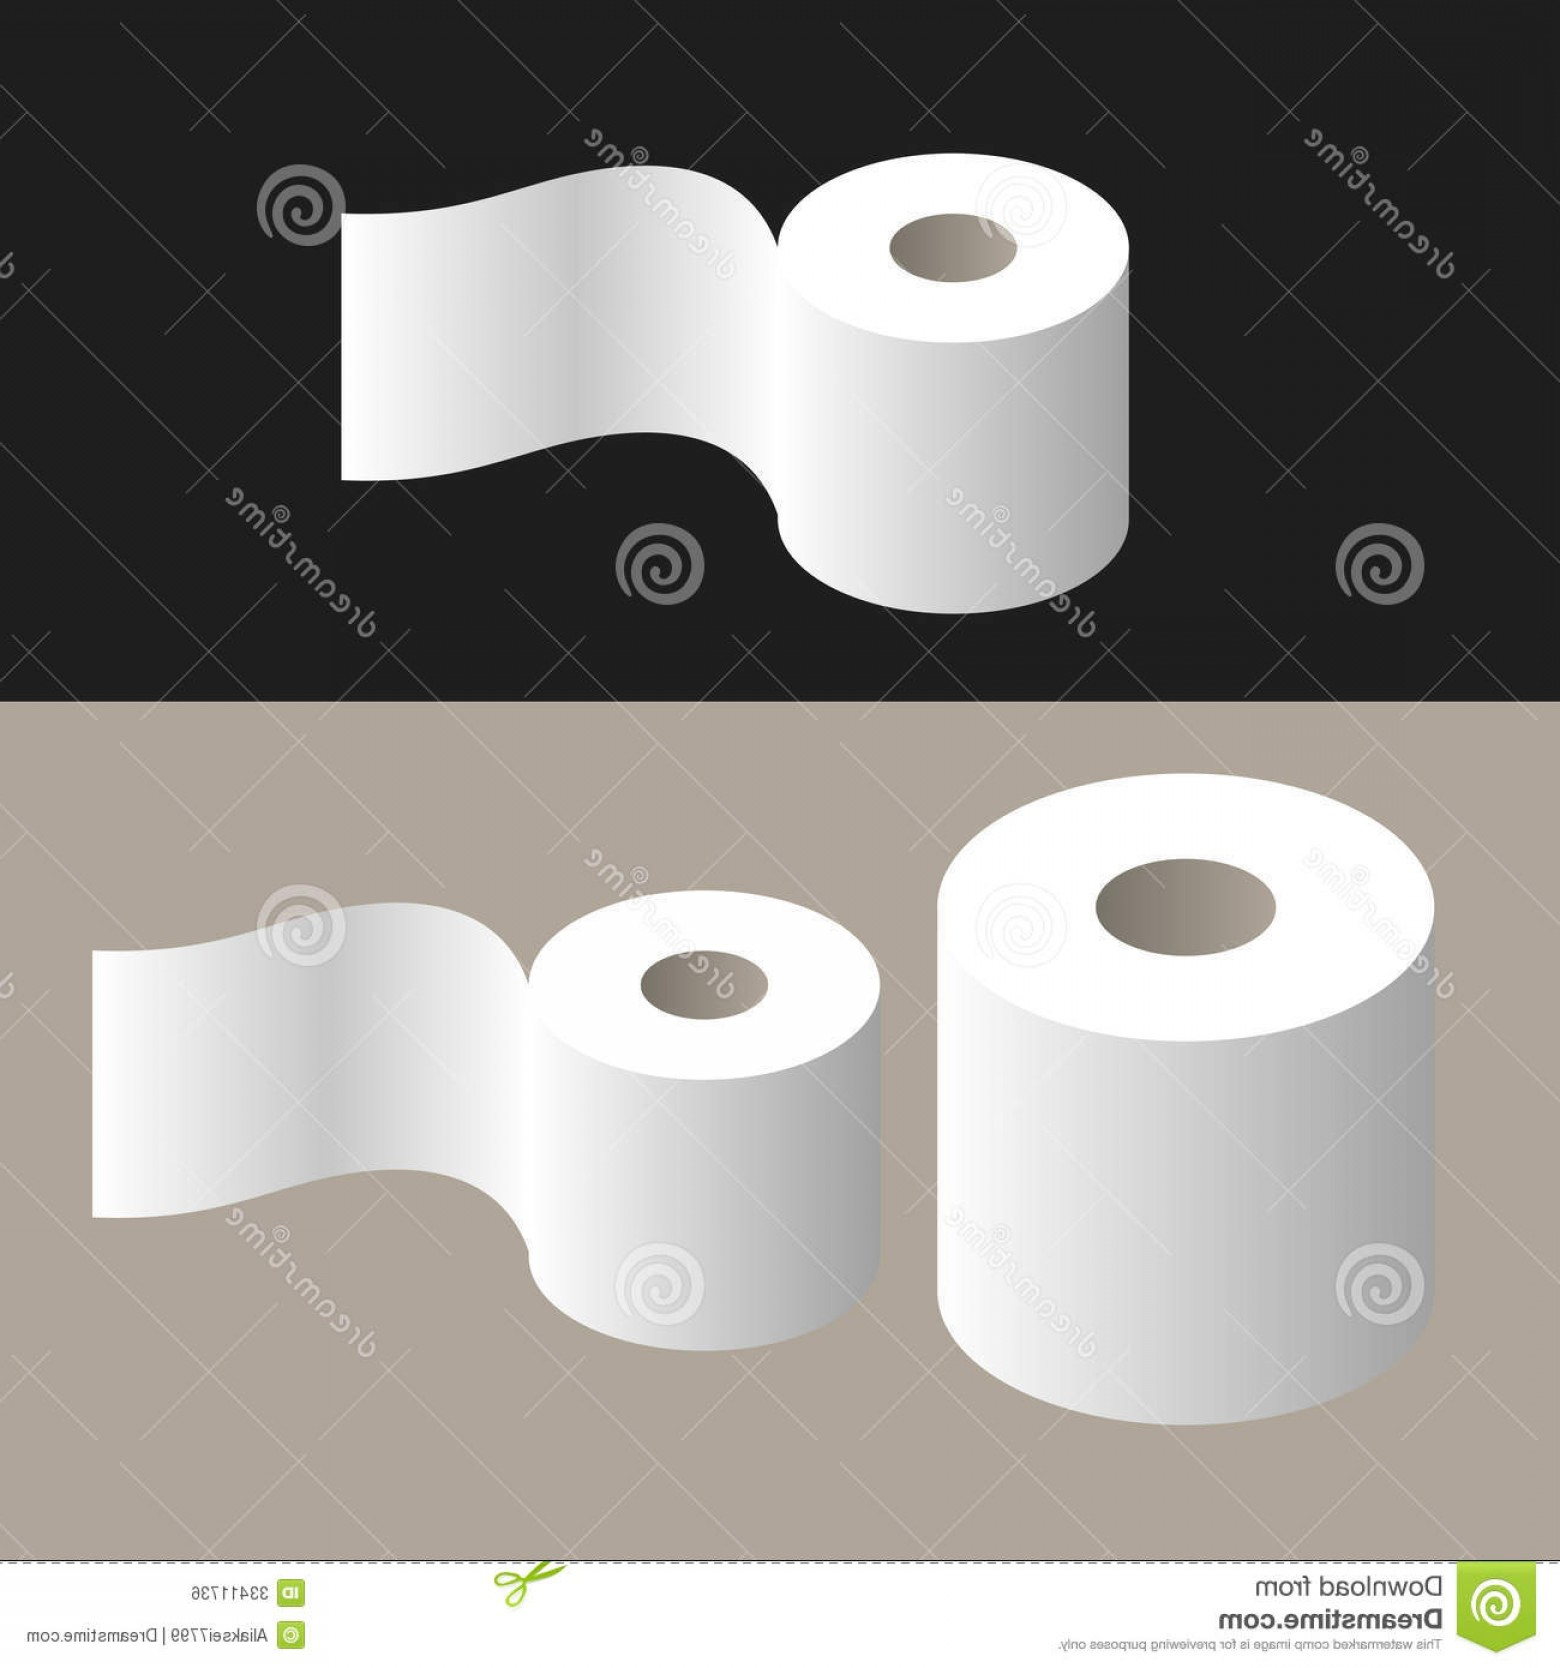 Toilet Paper Vector: Royalty Free Stock Image Toilet Paper Vector Illustration Eps Image